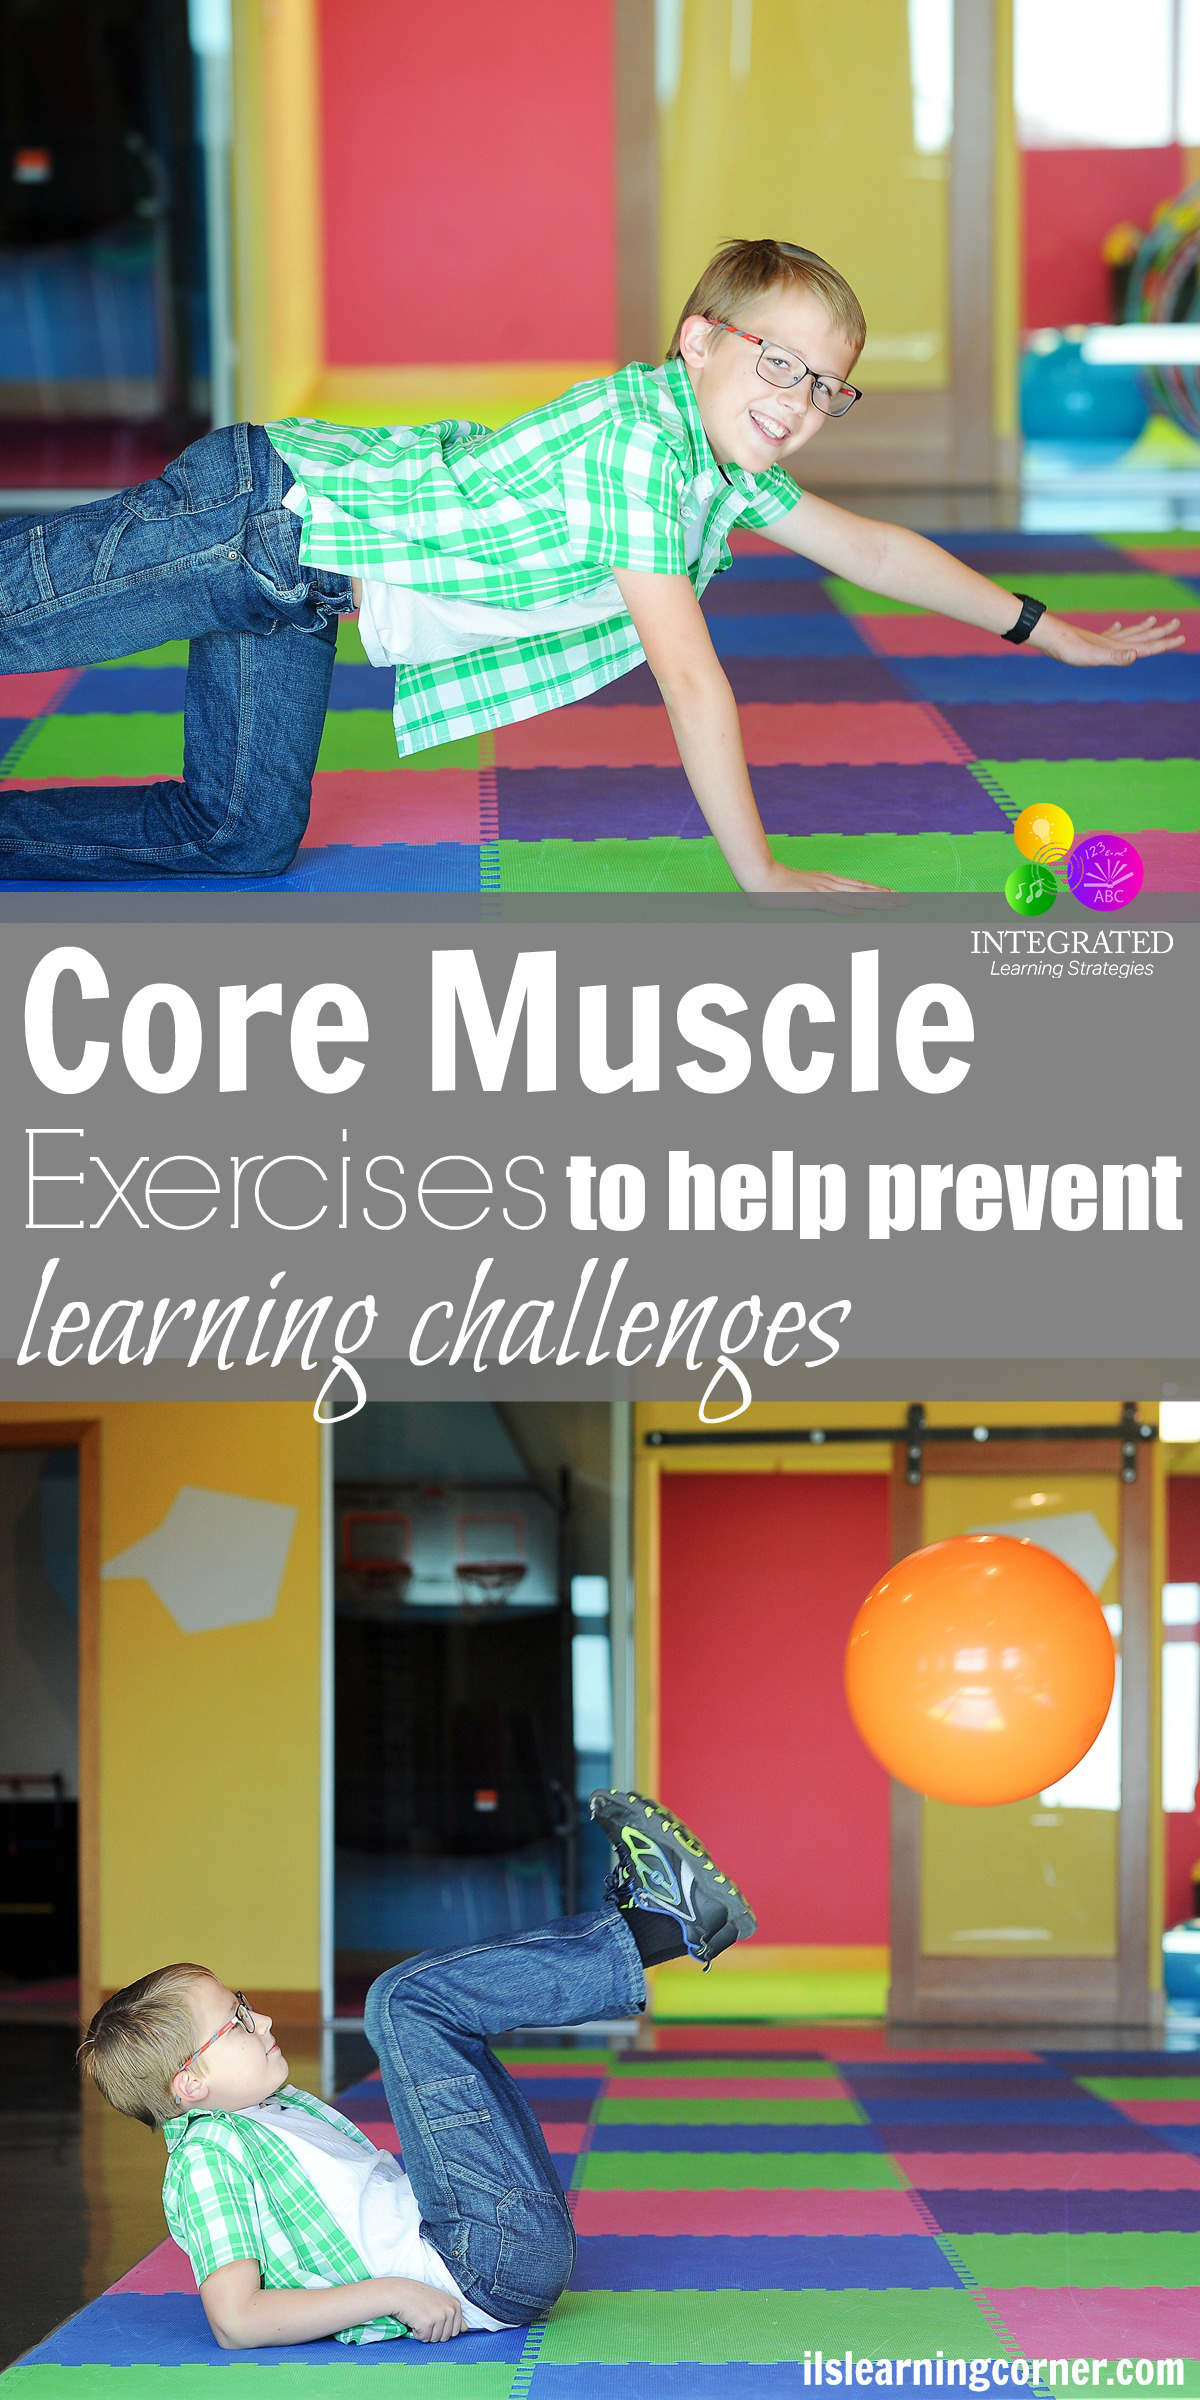 Why These Core Muscle Exercises Help Prevent Learning